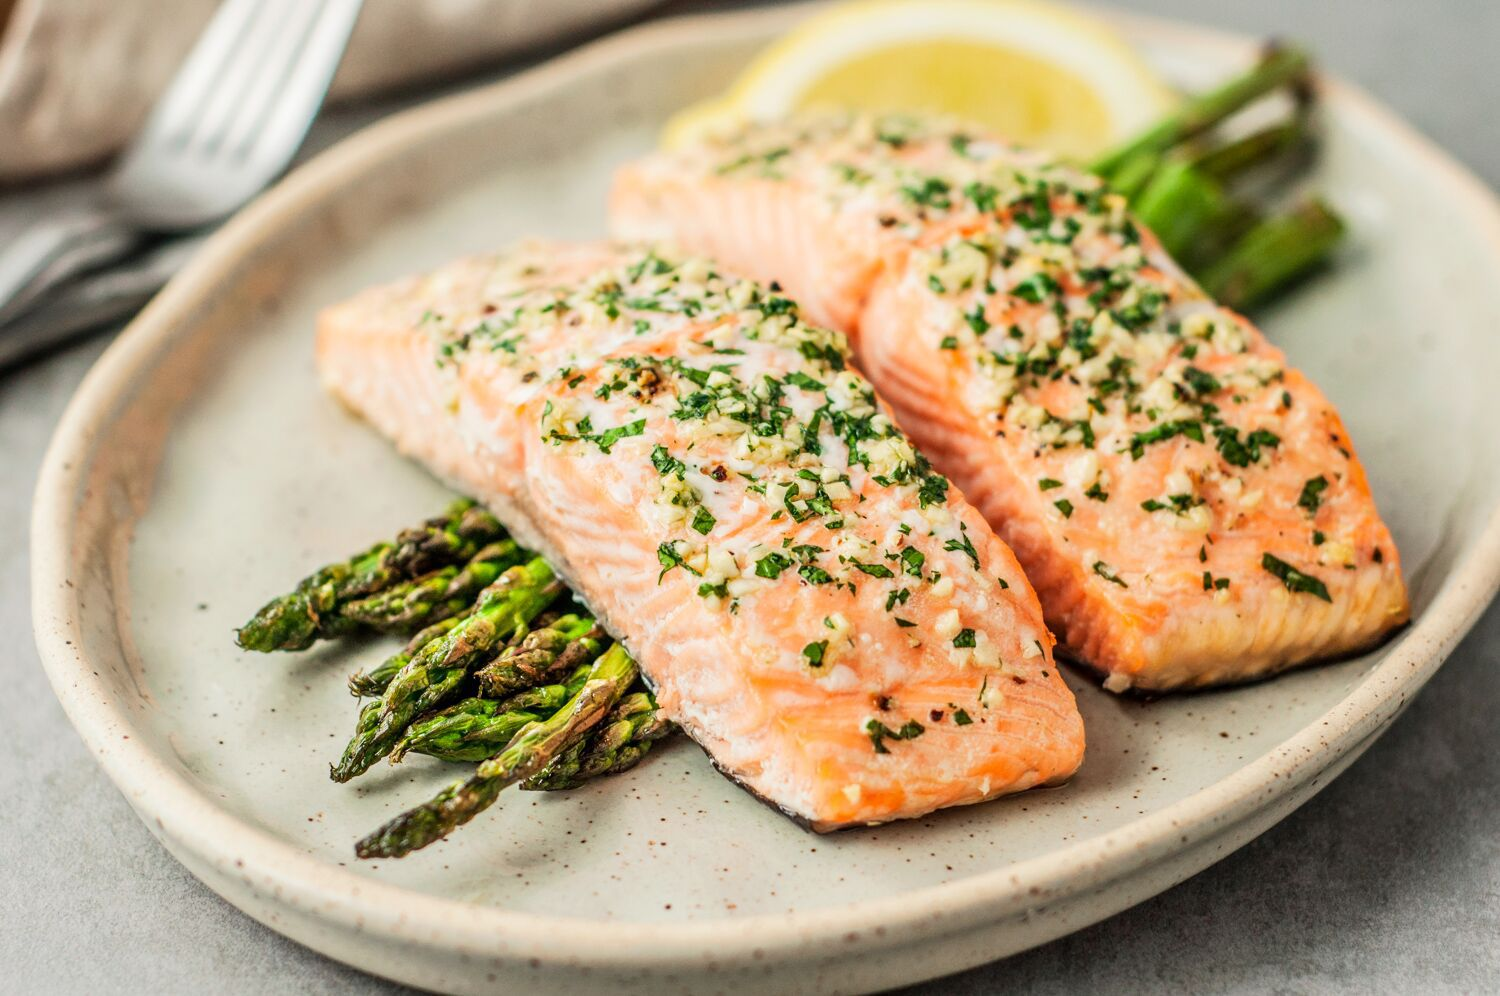 Low in fat | 7 Health Benefits of Salmon | Her Beauty